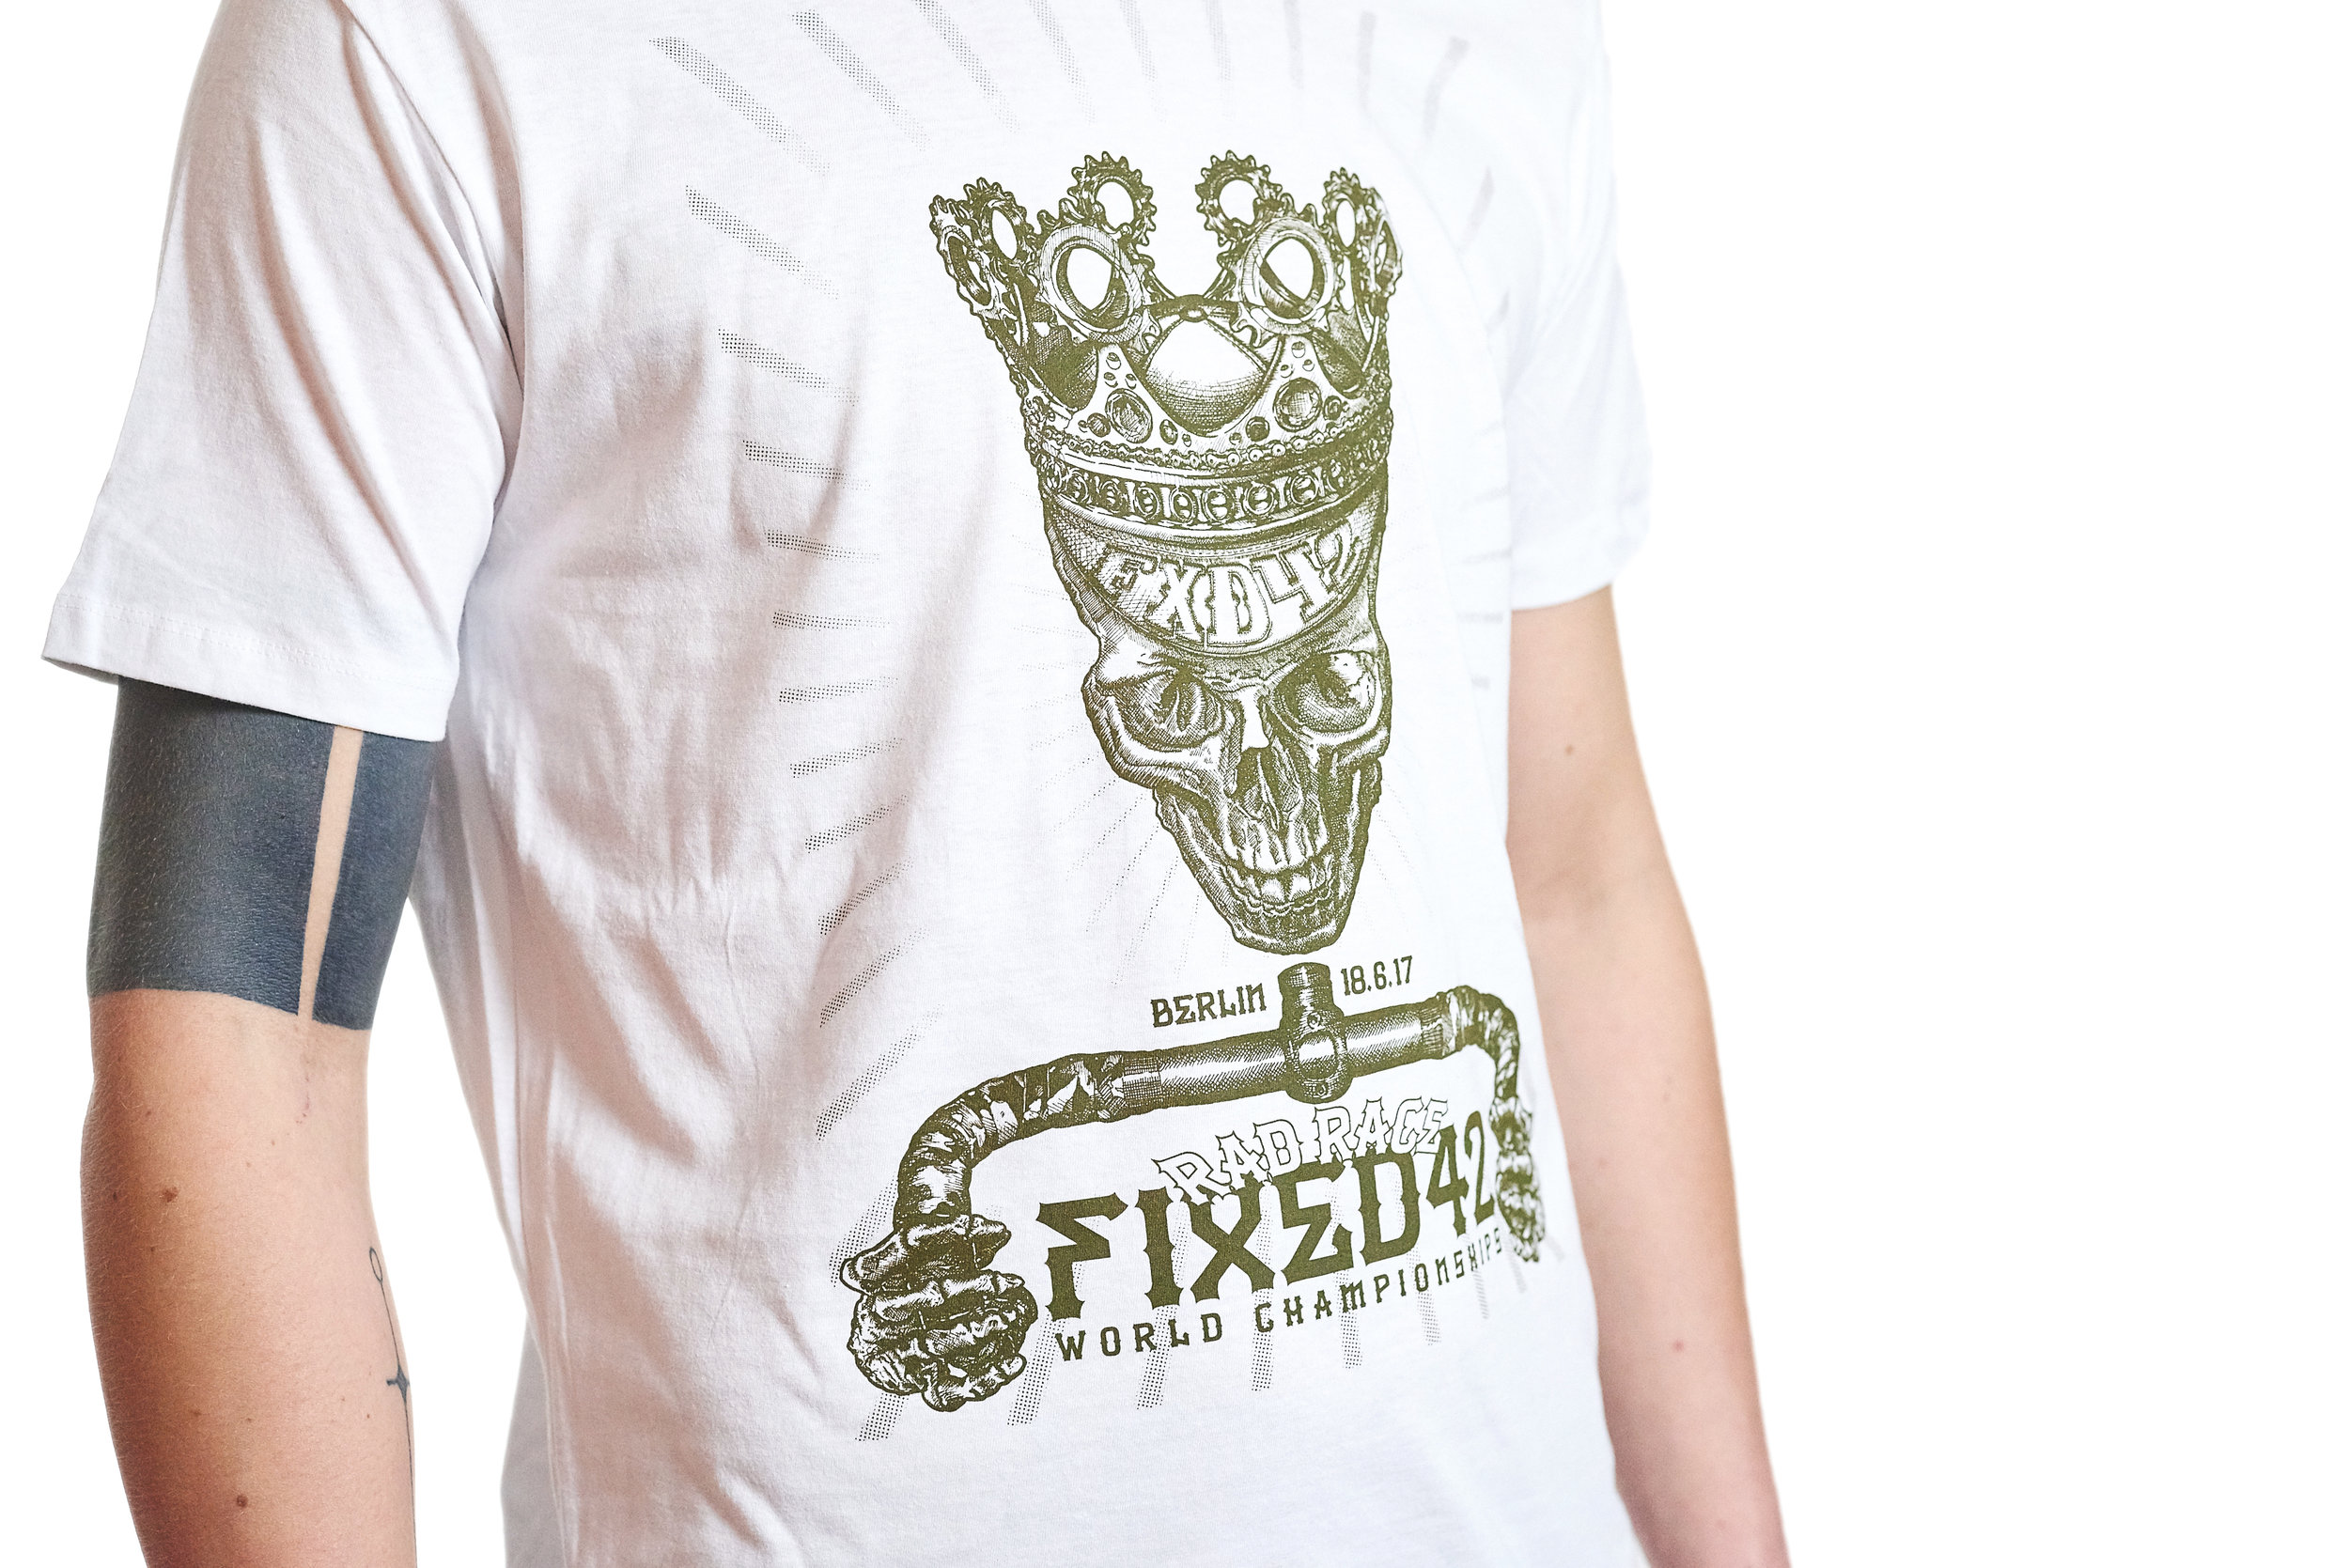 The official Fixed42 event shirt designed by Peer Koch